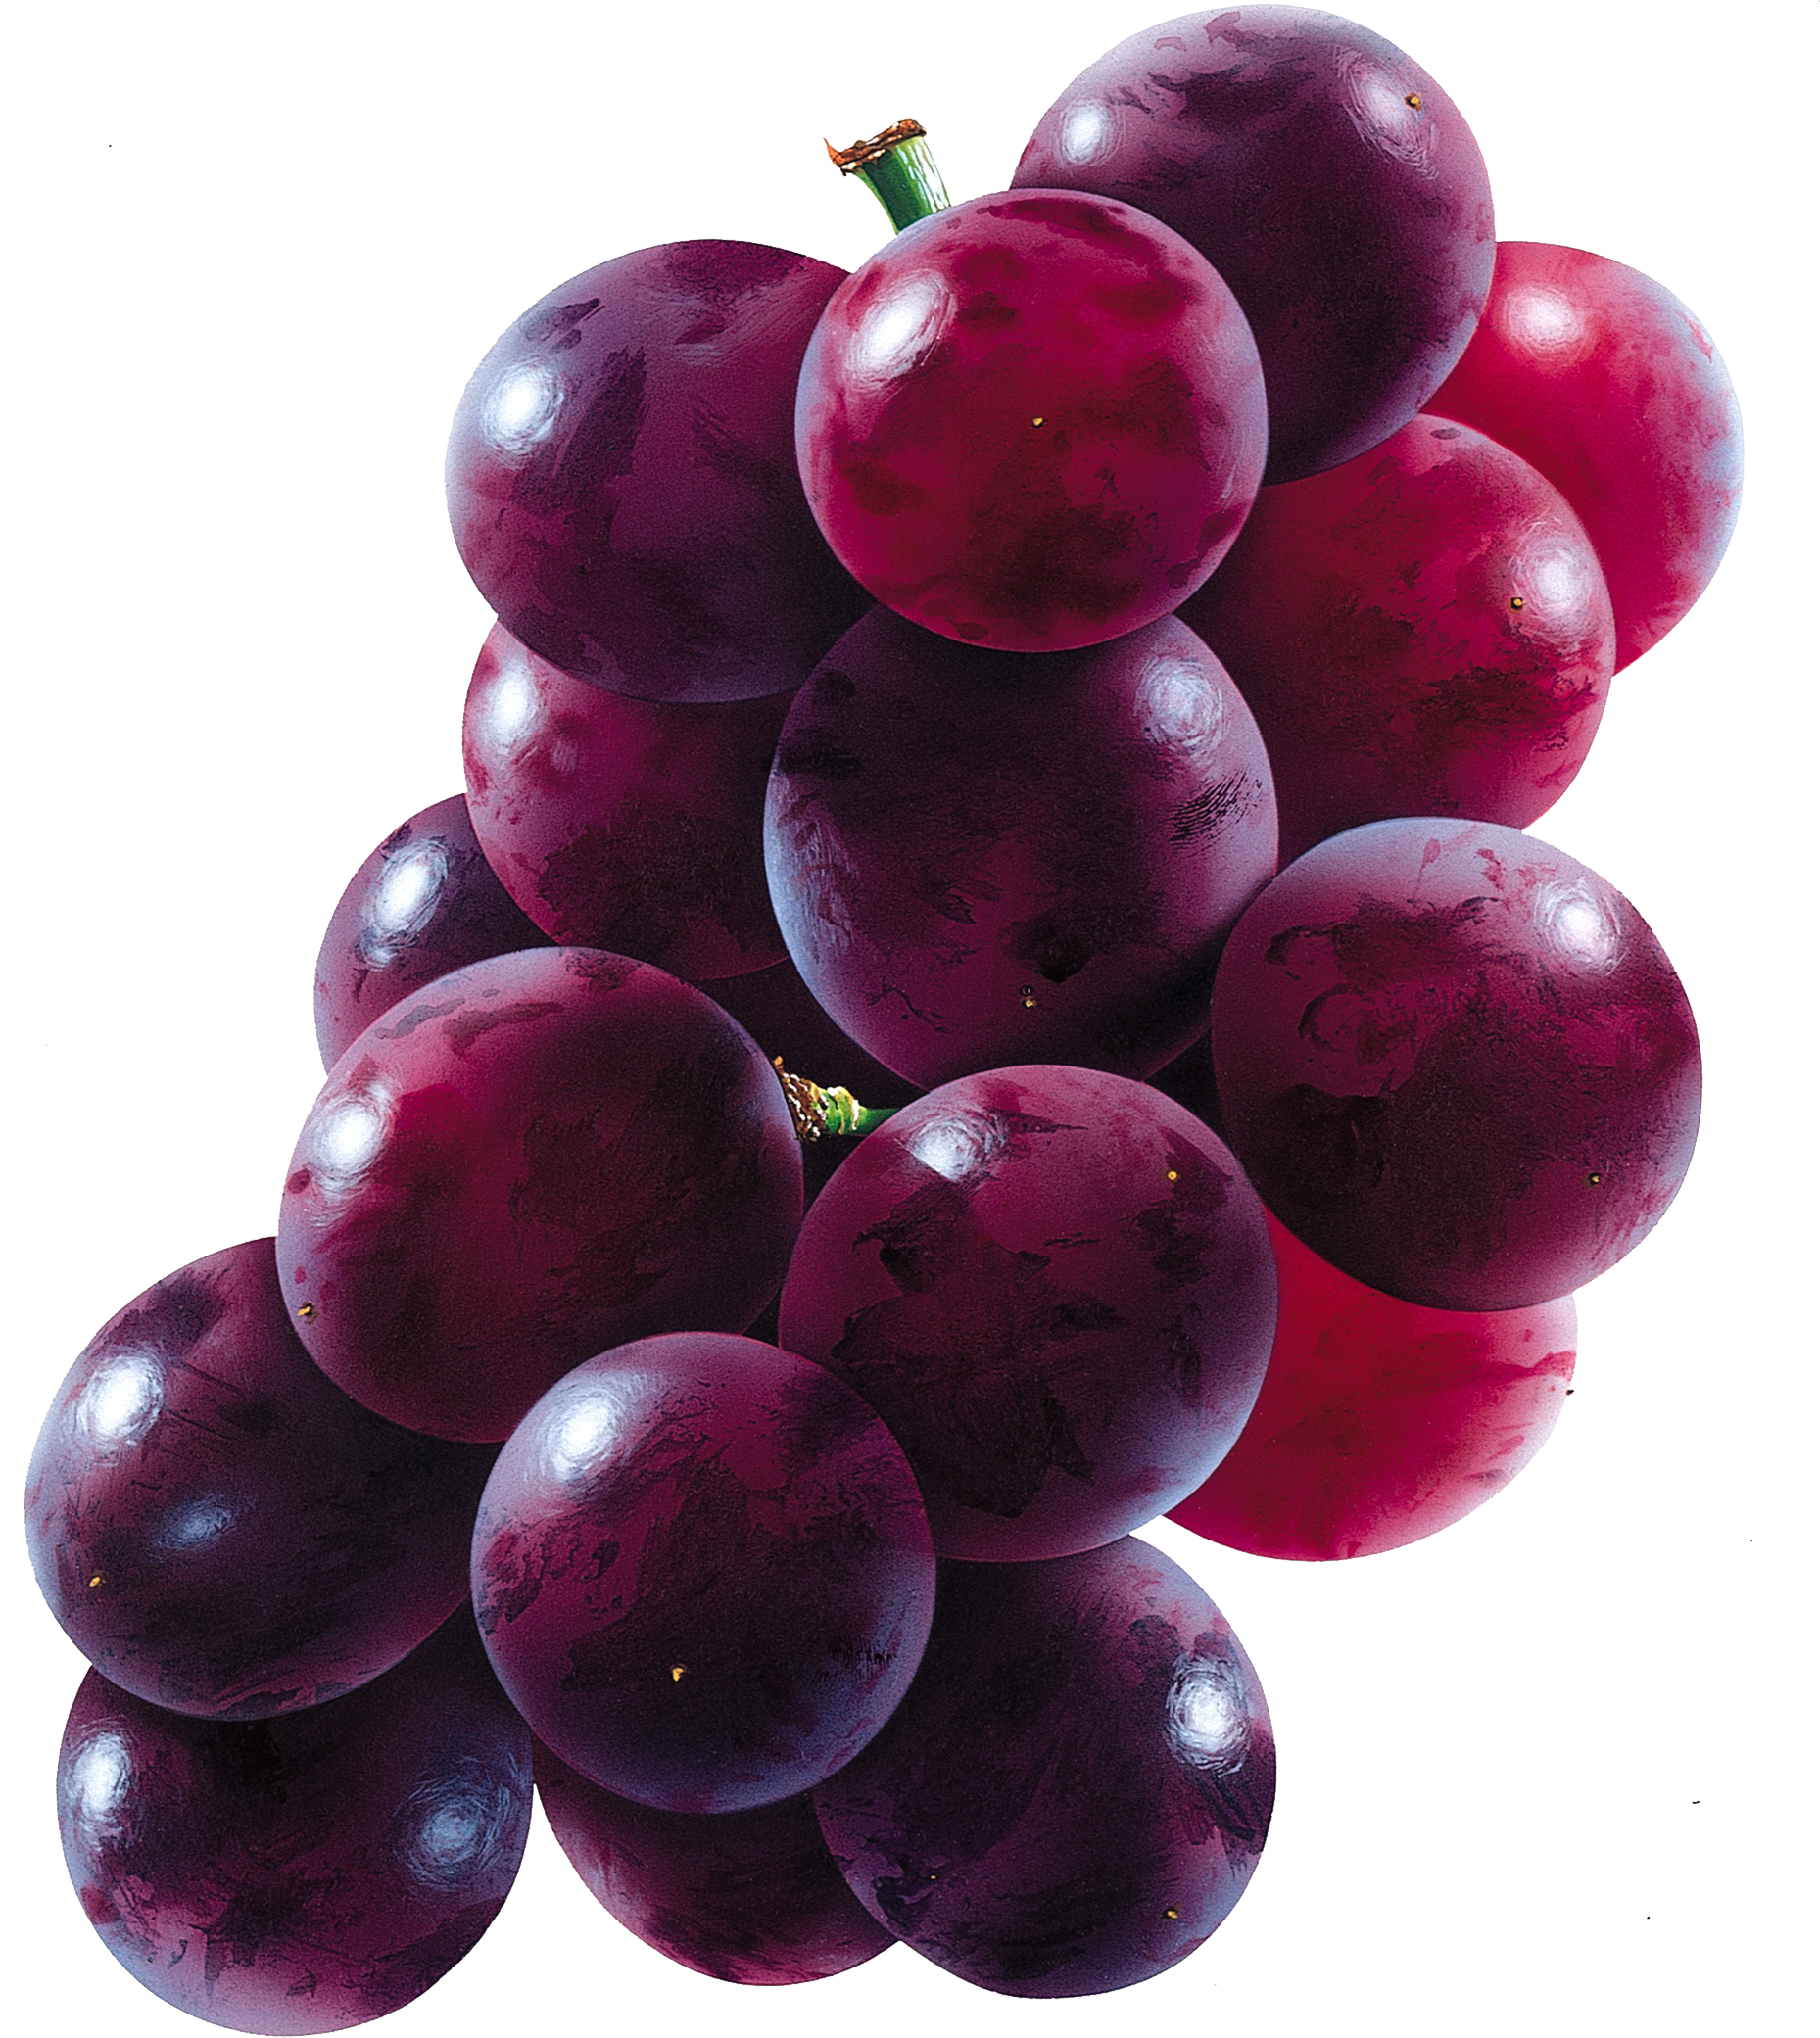 Red grape PNG image - Grapes PNG